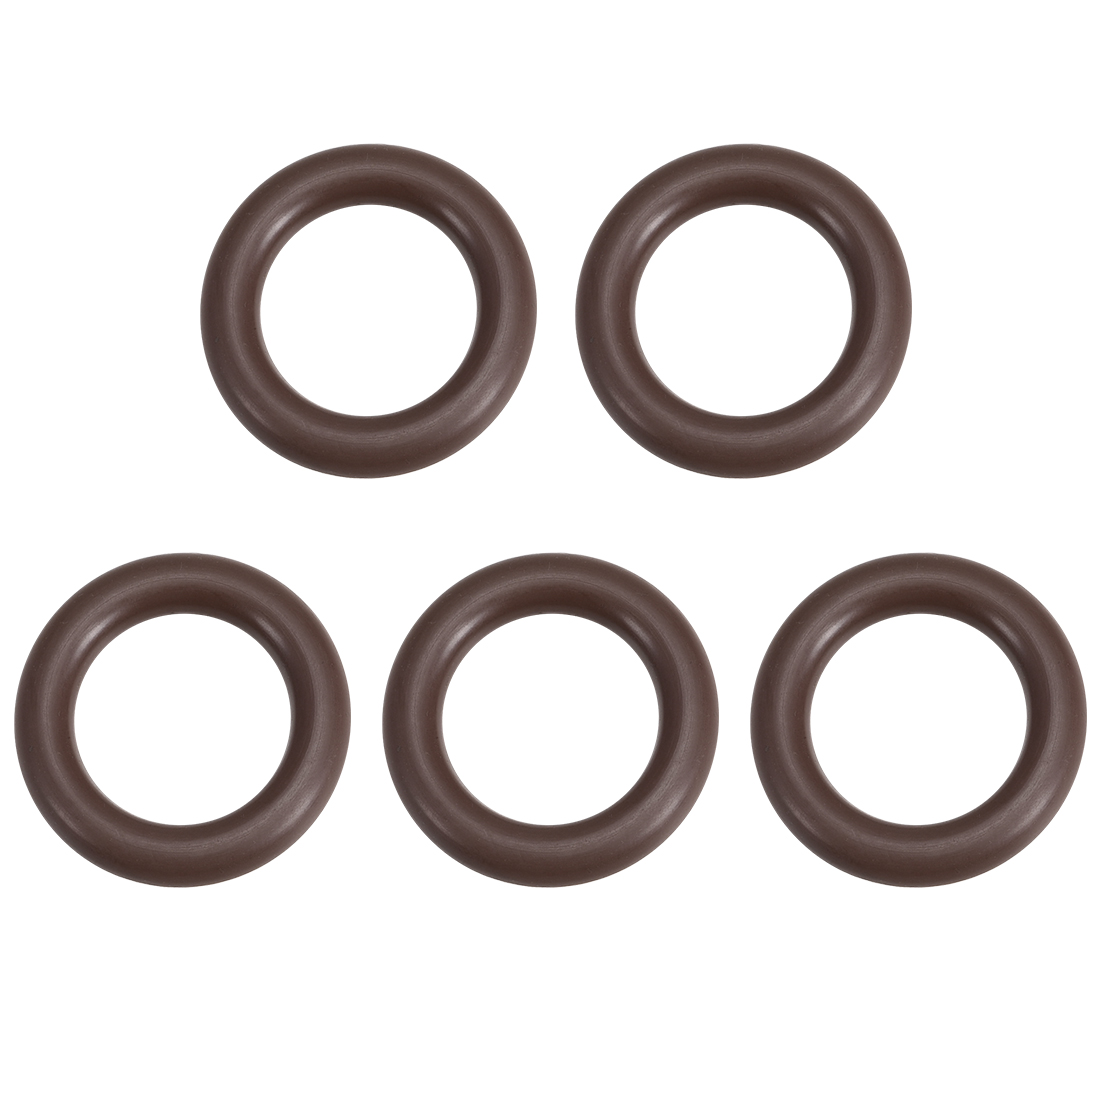 uxcell 5 Pcs Fluororubber Gasket Sanitary Tri Clamp Washer 24mm x 14mm O-Ring